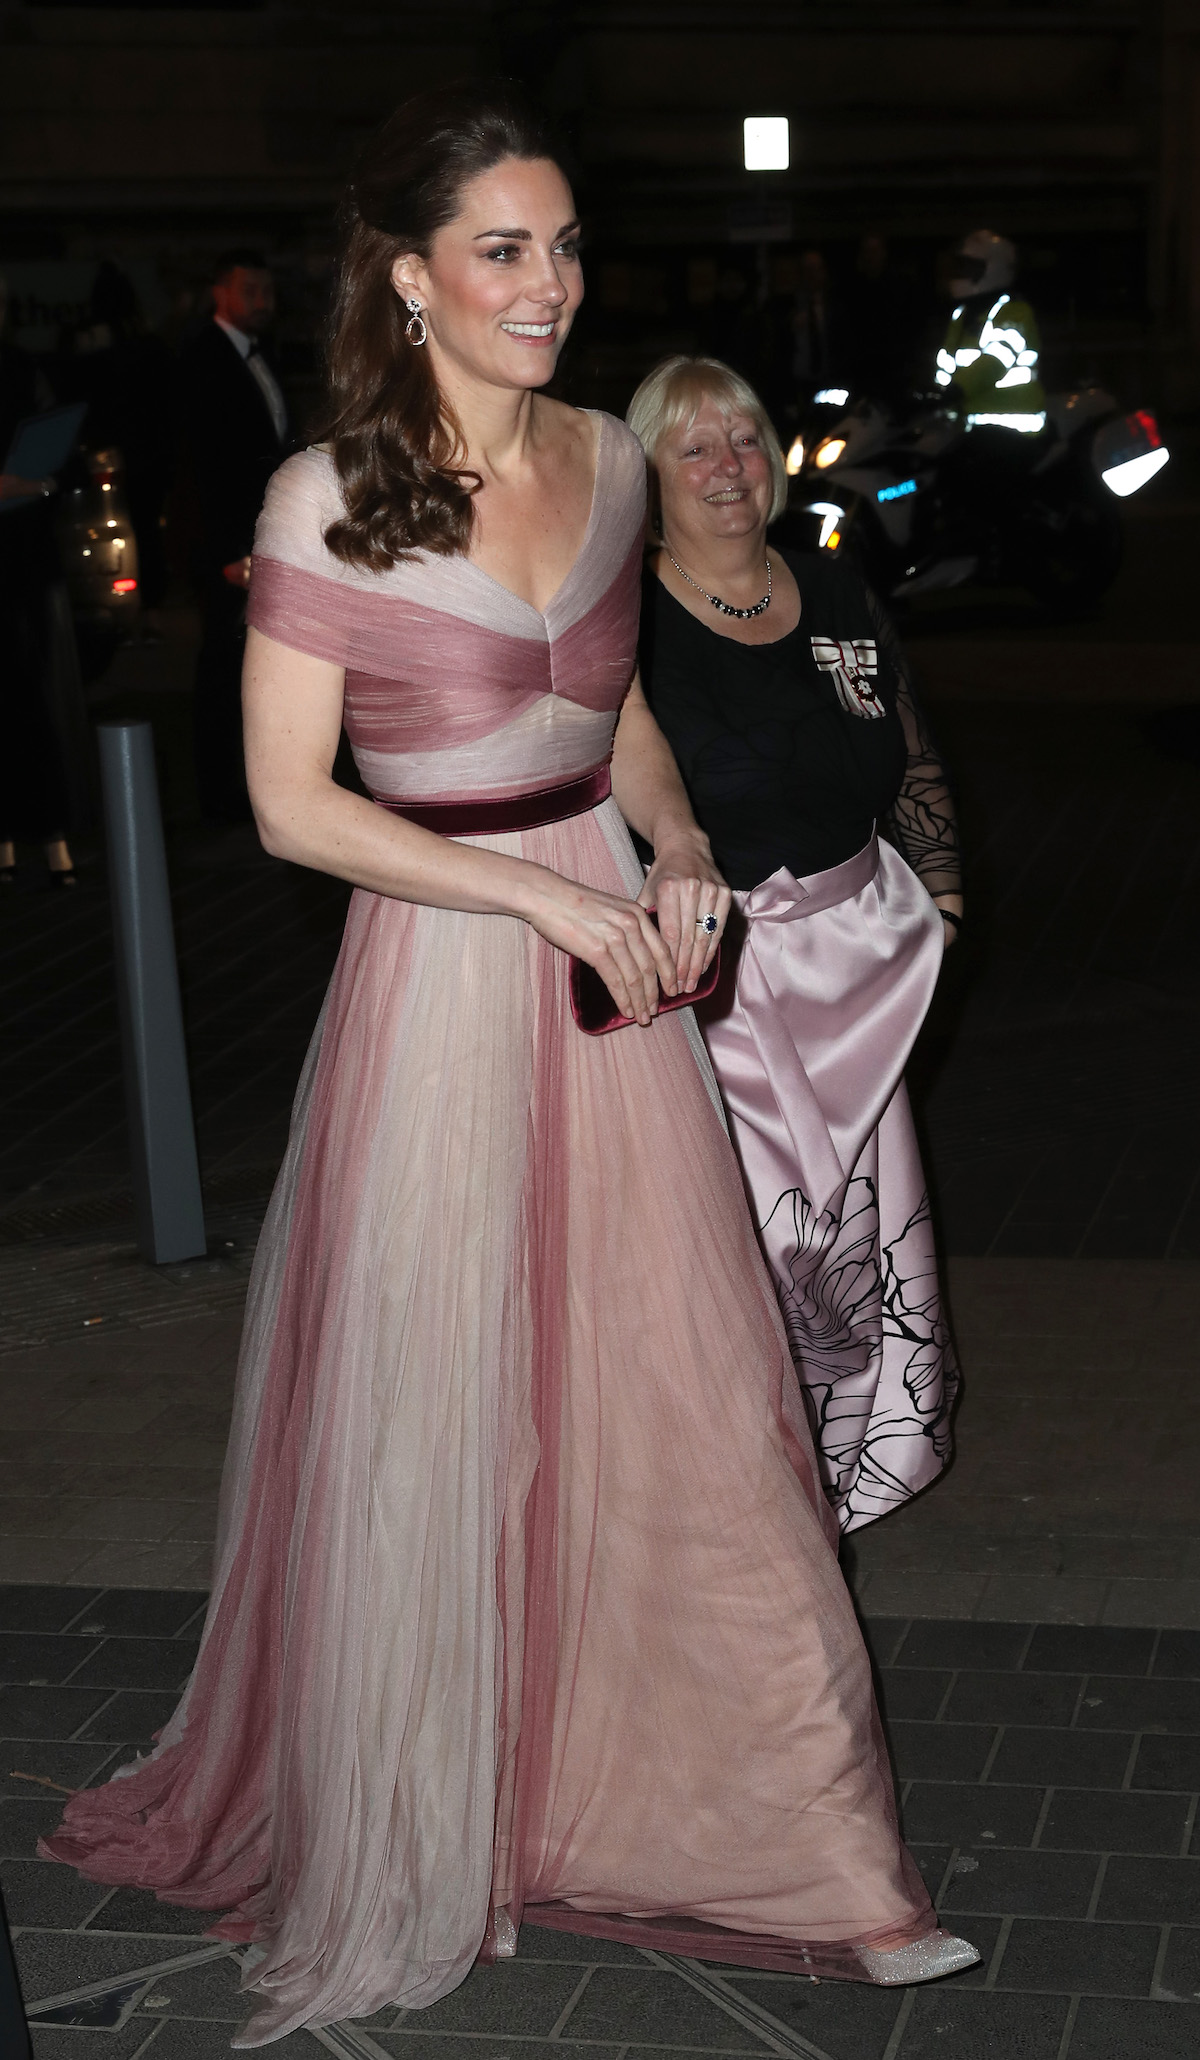 Catherine, Duchess of Cambridge, patron of 100 Women in Finance's Philanthropic Initiatives, and Colonel Jane Davis, Her Majesty's Vice Lord Lieutenant of Greater London, attend a Gala Dinner in aid of 'Mentally Healthy Schools' at the Victoria and Albert Museum on February 13, 2019 in London, England. (Photo by Chris Jackson - WPA Pool/Getty Images)